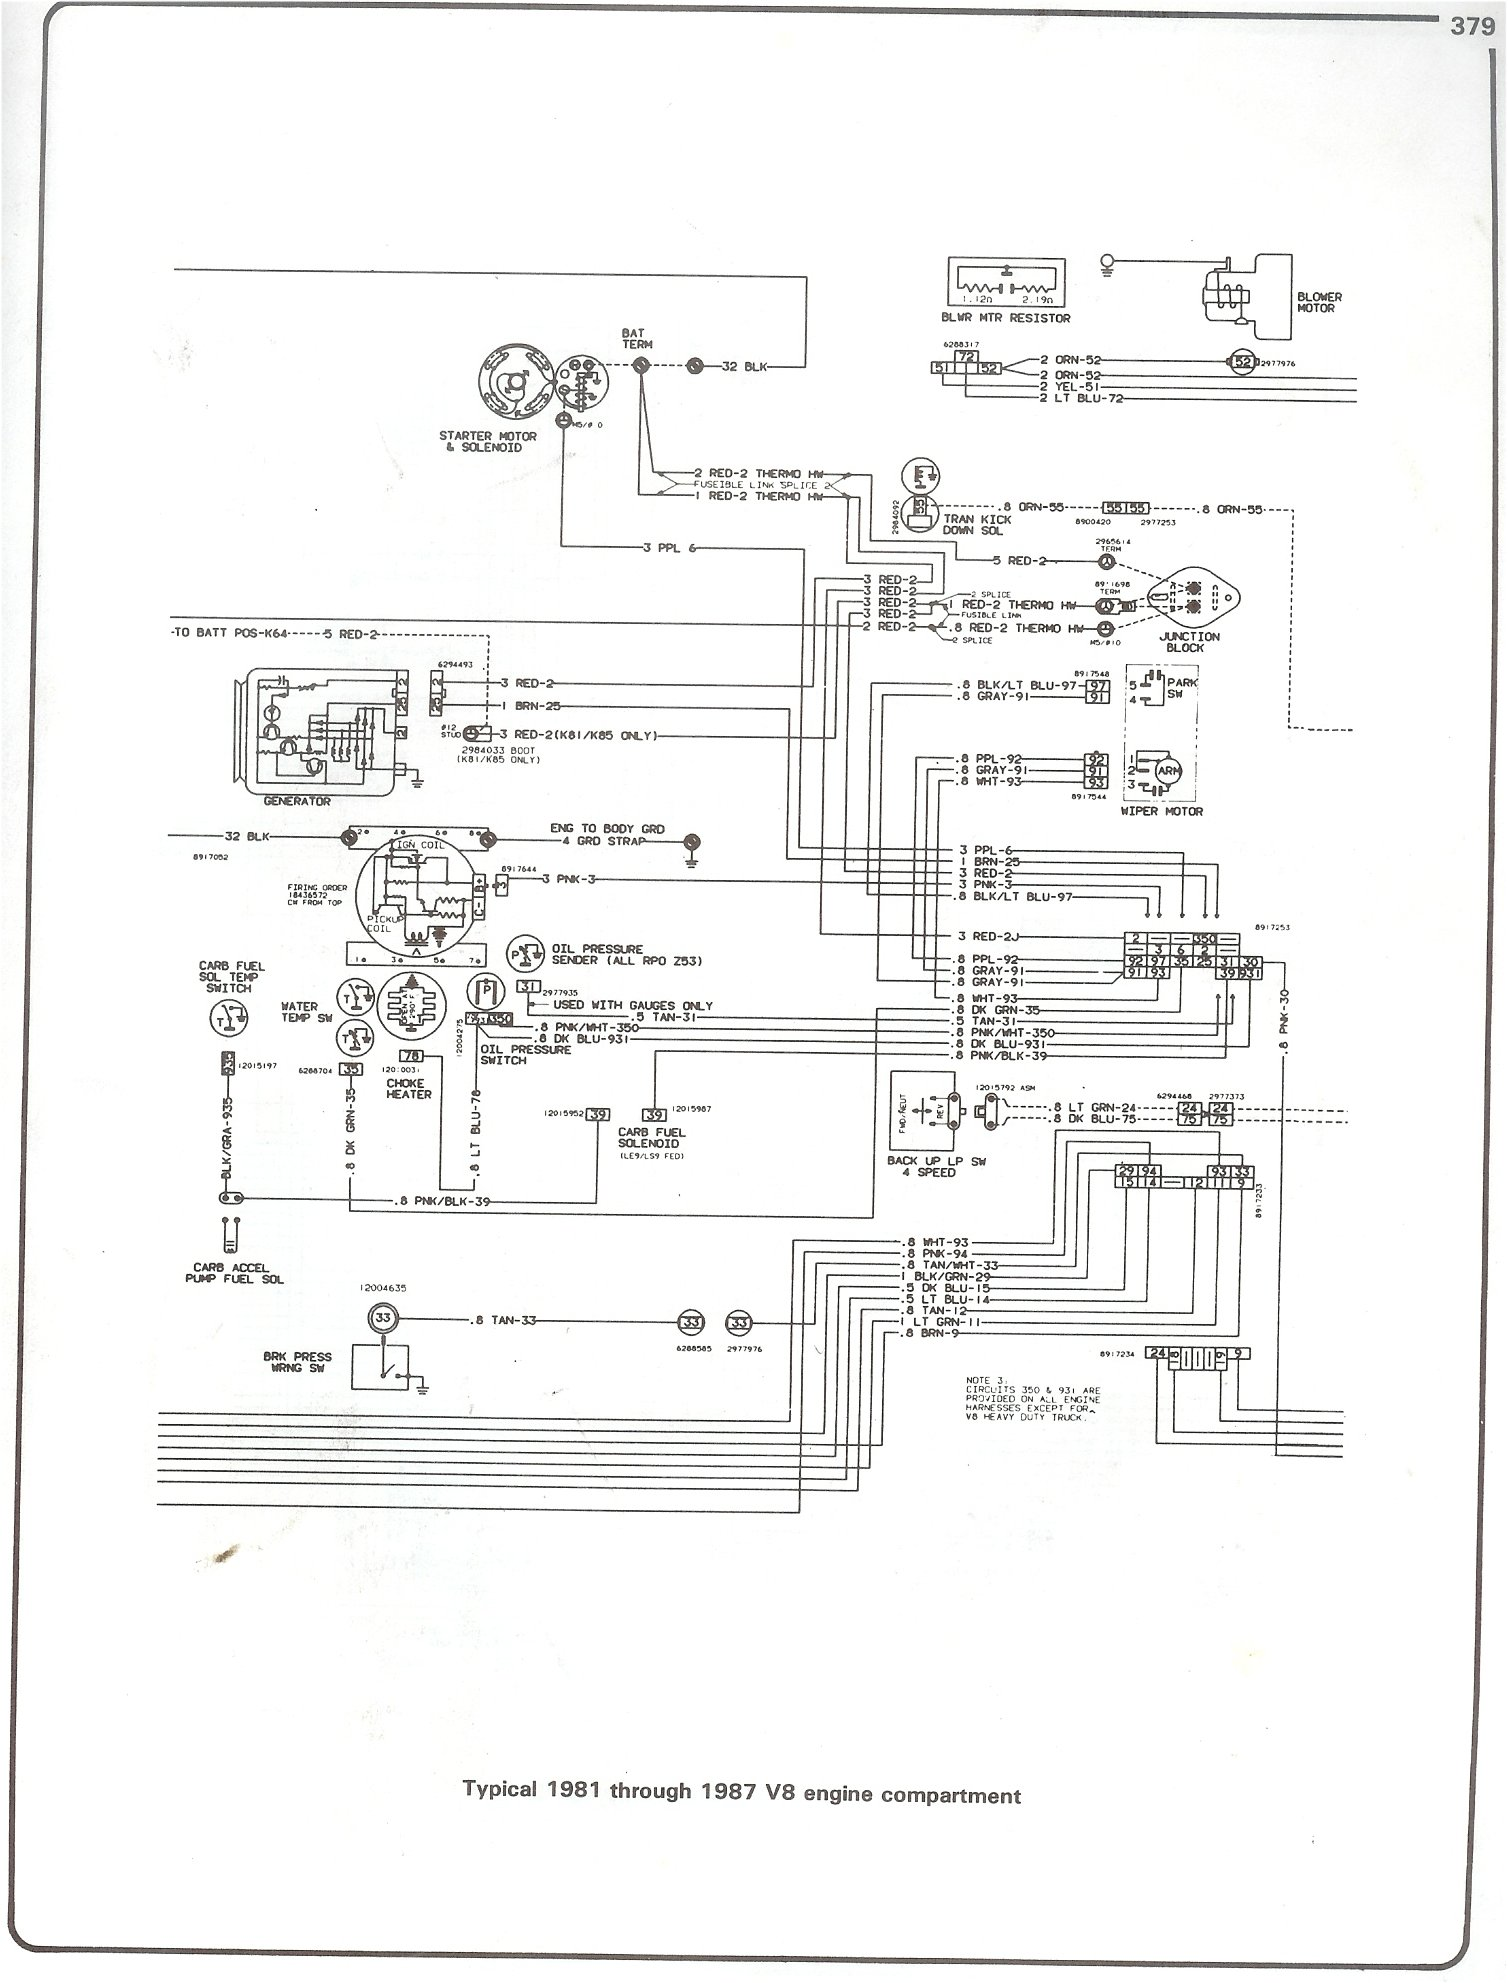 complete 73 87 wiring diagrams rh forum 73 87chevytrucks com 1996 Chevy S10 Wiring Diagram DLC 1996 Chevy Blazer Transmission Wiring Diagram